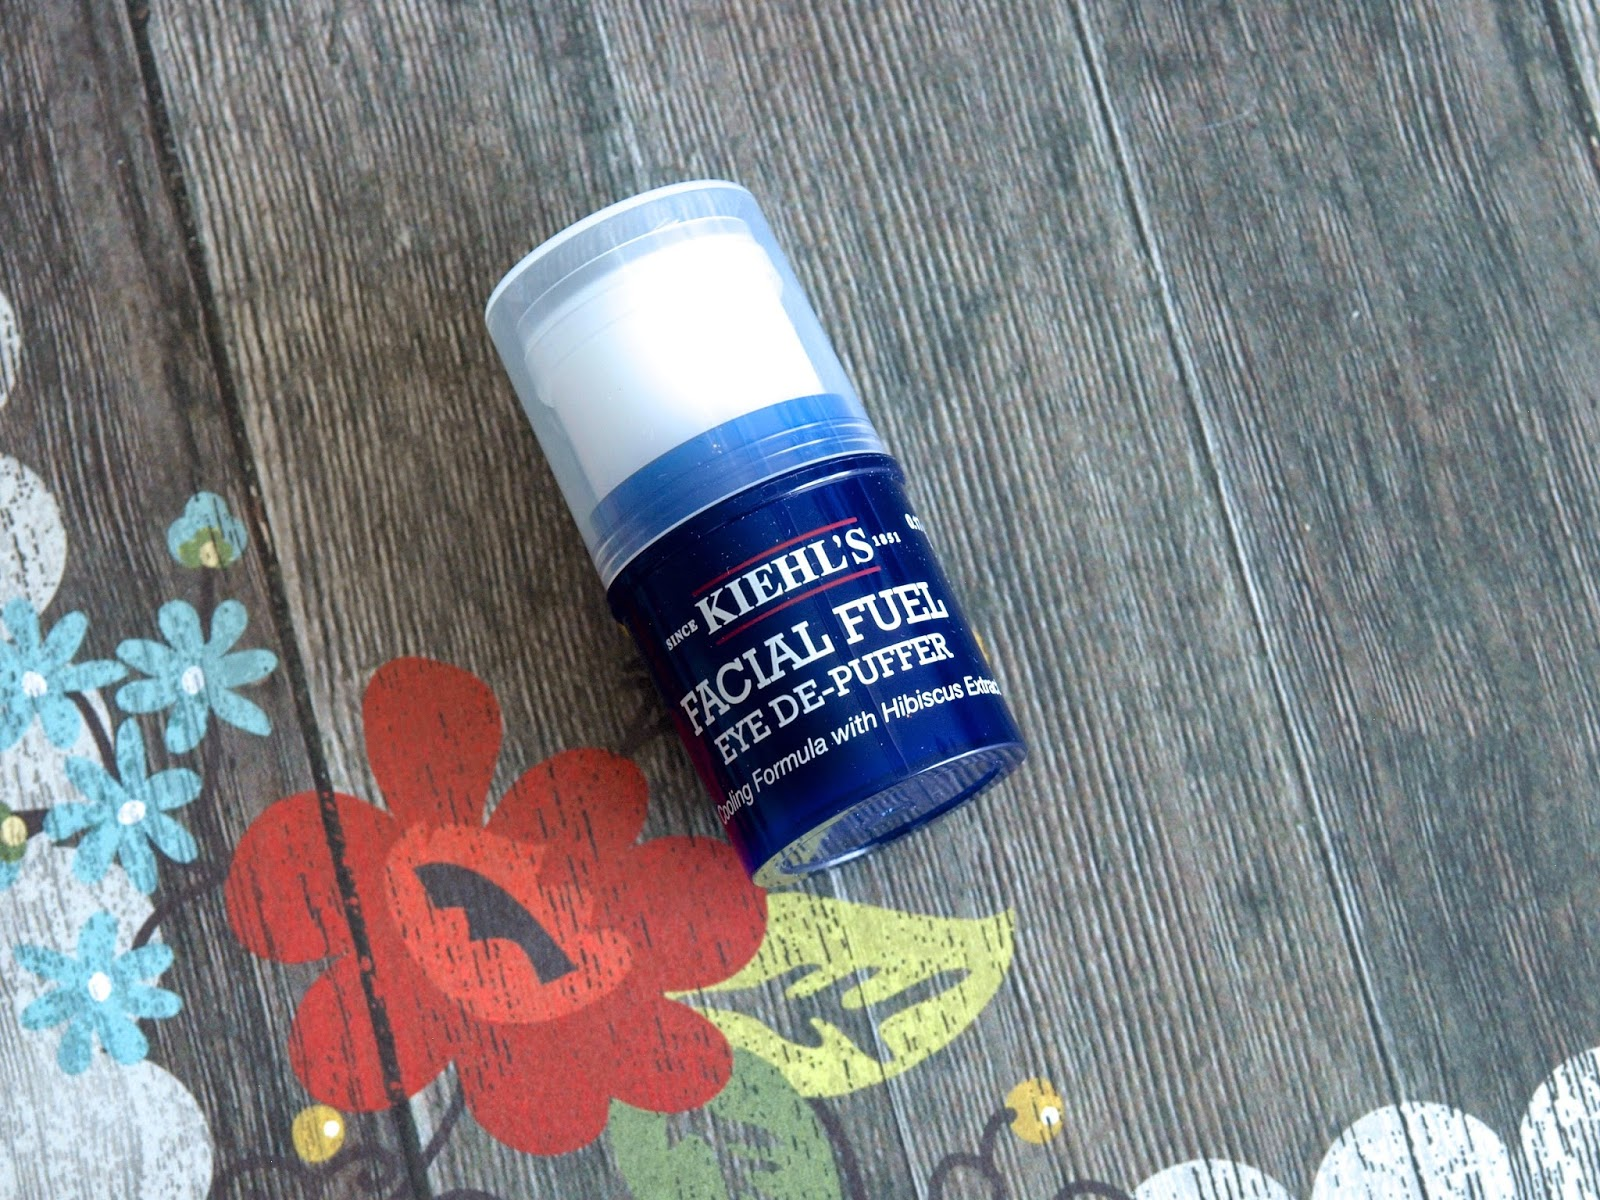 Kiehl's Facial Fuel Eye-Depuffer: Review